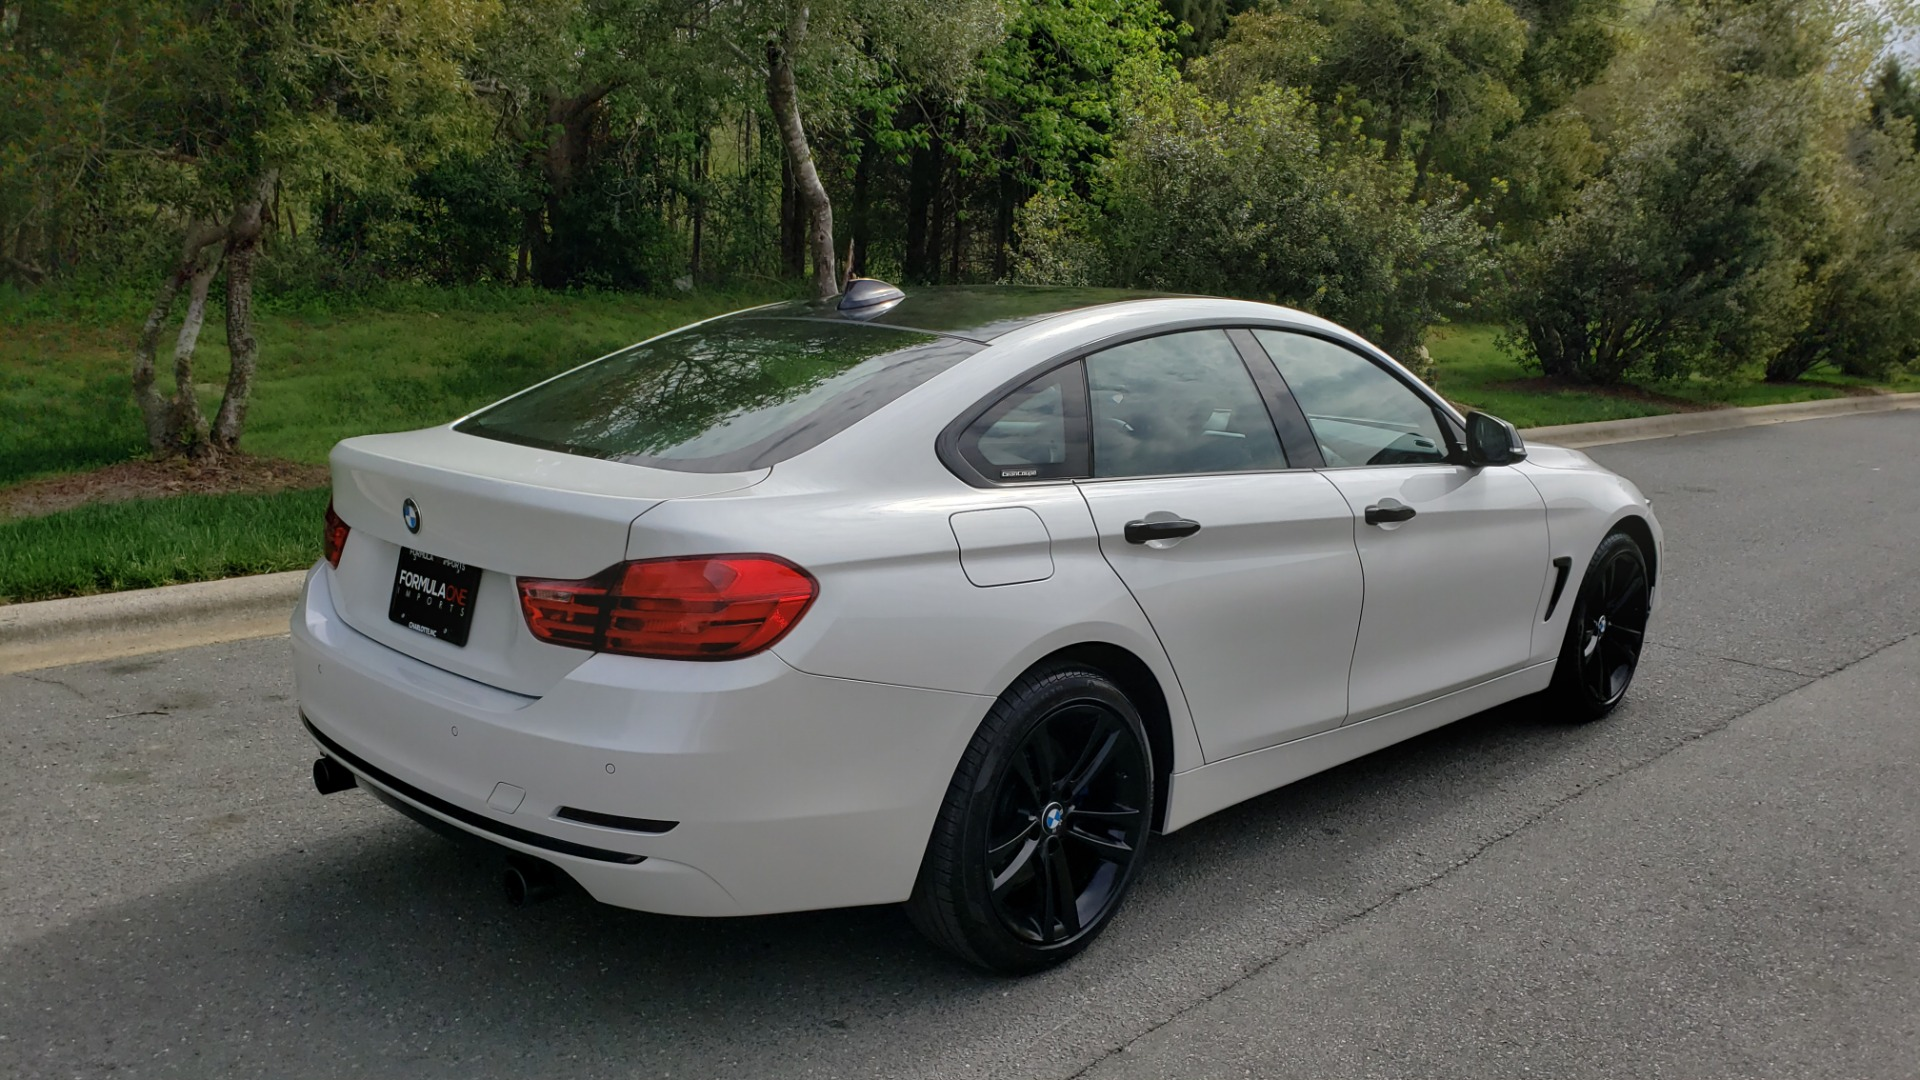 Used 2017 BMW 4 SERIES 440I XDRIVE / NAV / TECH PKG / DRVR ASST / SNRF / REARVIEW for sale Sold at Formula Imports in Charlotte NC 28227 11